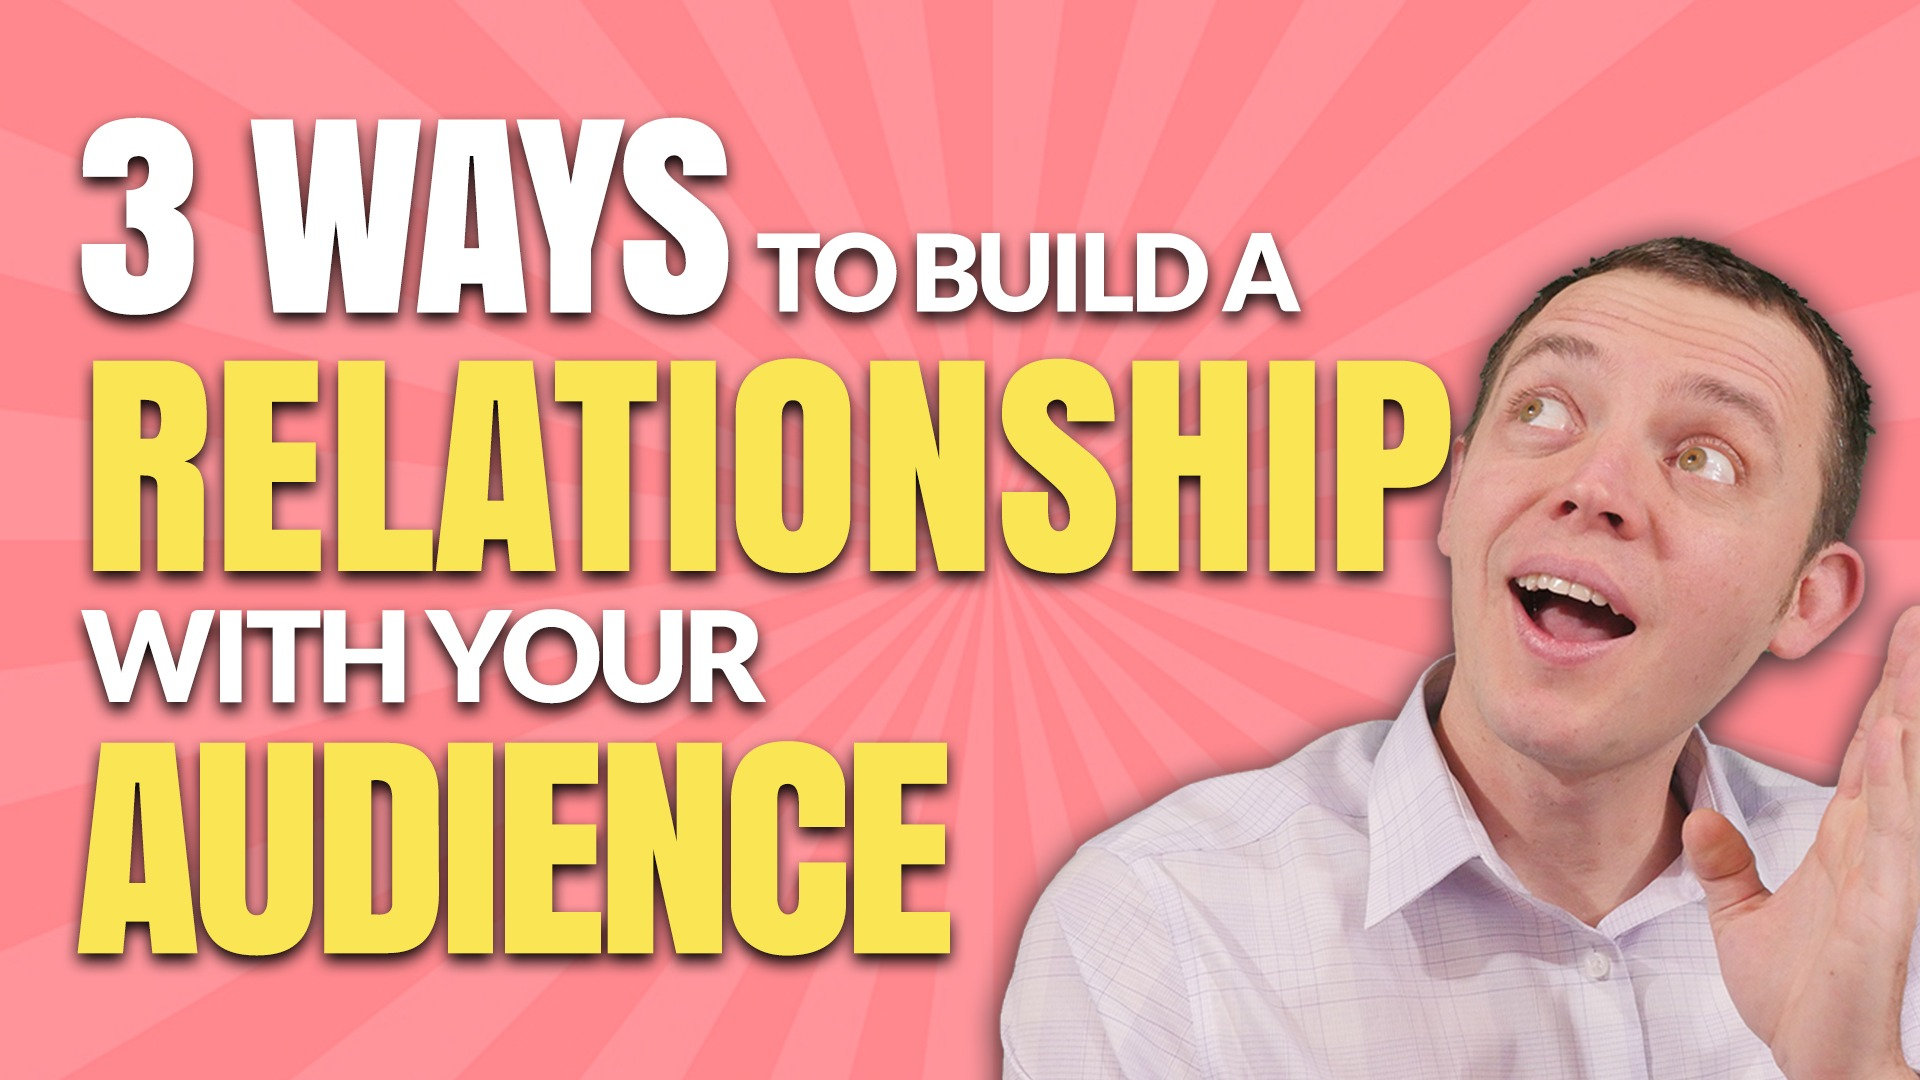 3 Ways to Build a Stronger Relationship with Your Audience